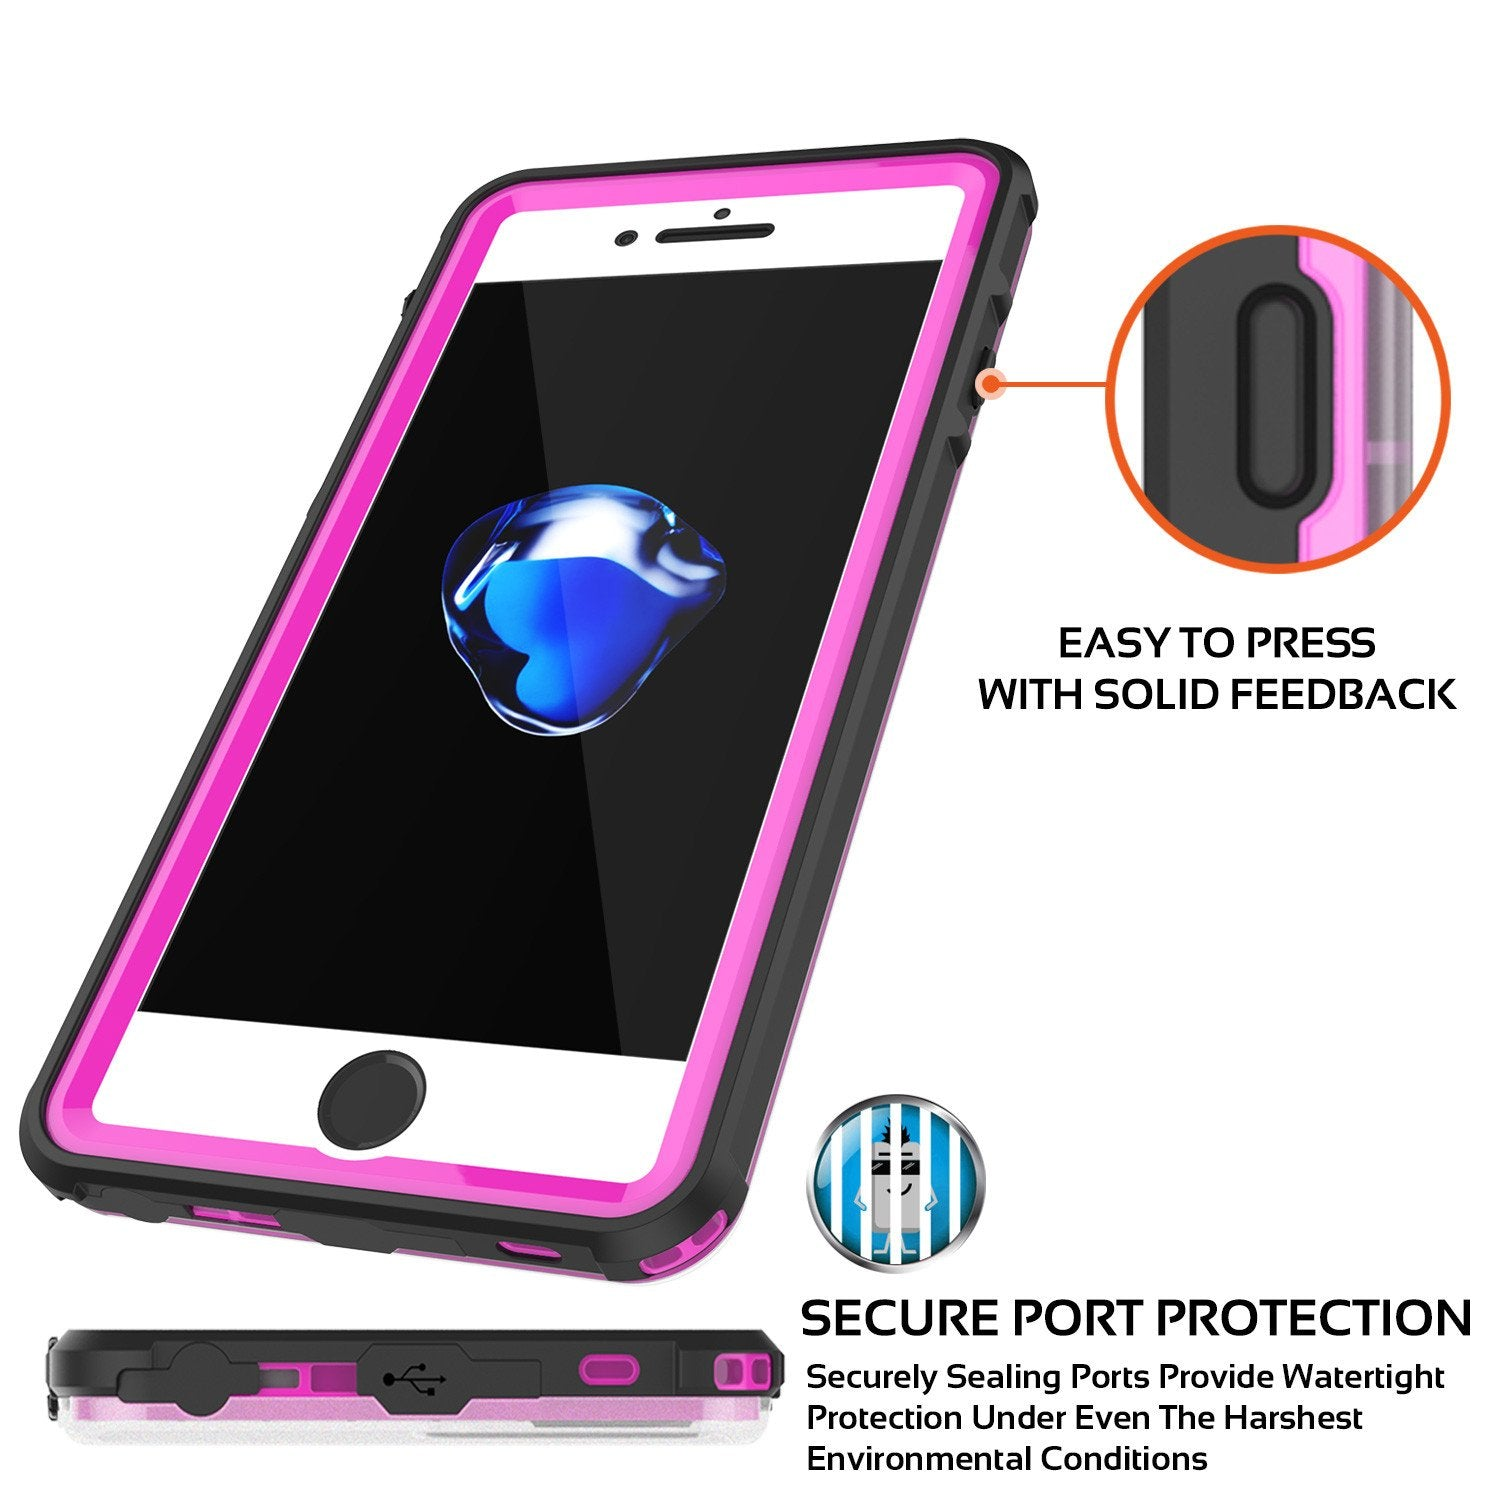 iPhone 8+ Plus Waterproof Case, PUNKcase CRYSTAL Pink W/ Attached Screen Protector  | Warranty